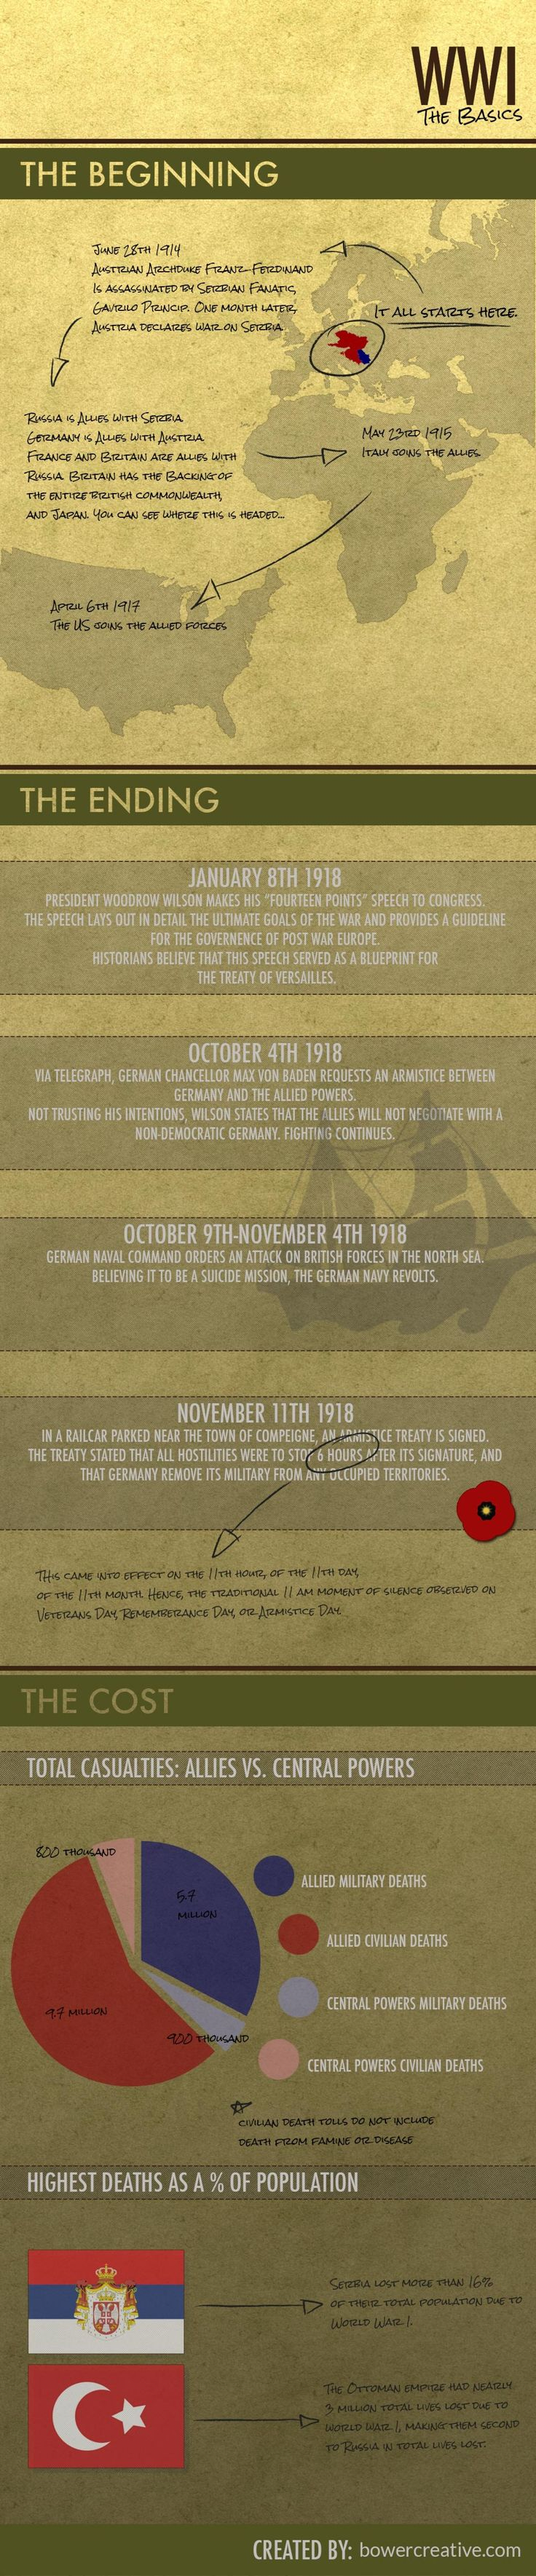 WWI: The Basics Infographic RePinned by HistorySimulation.com